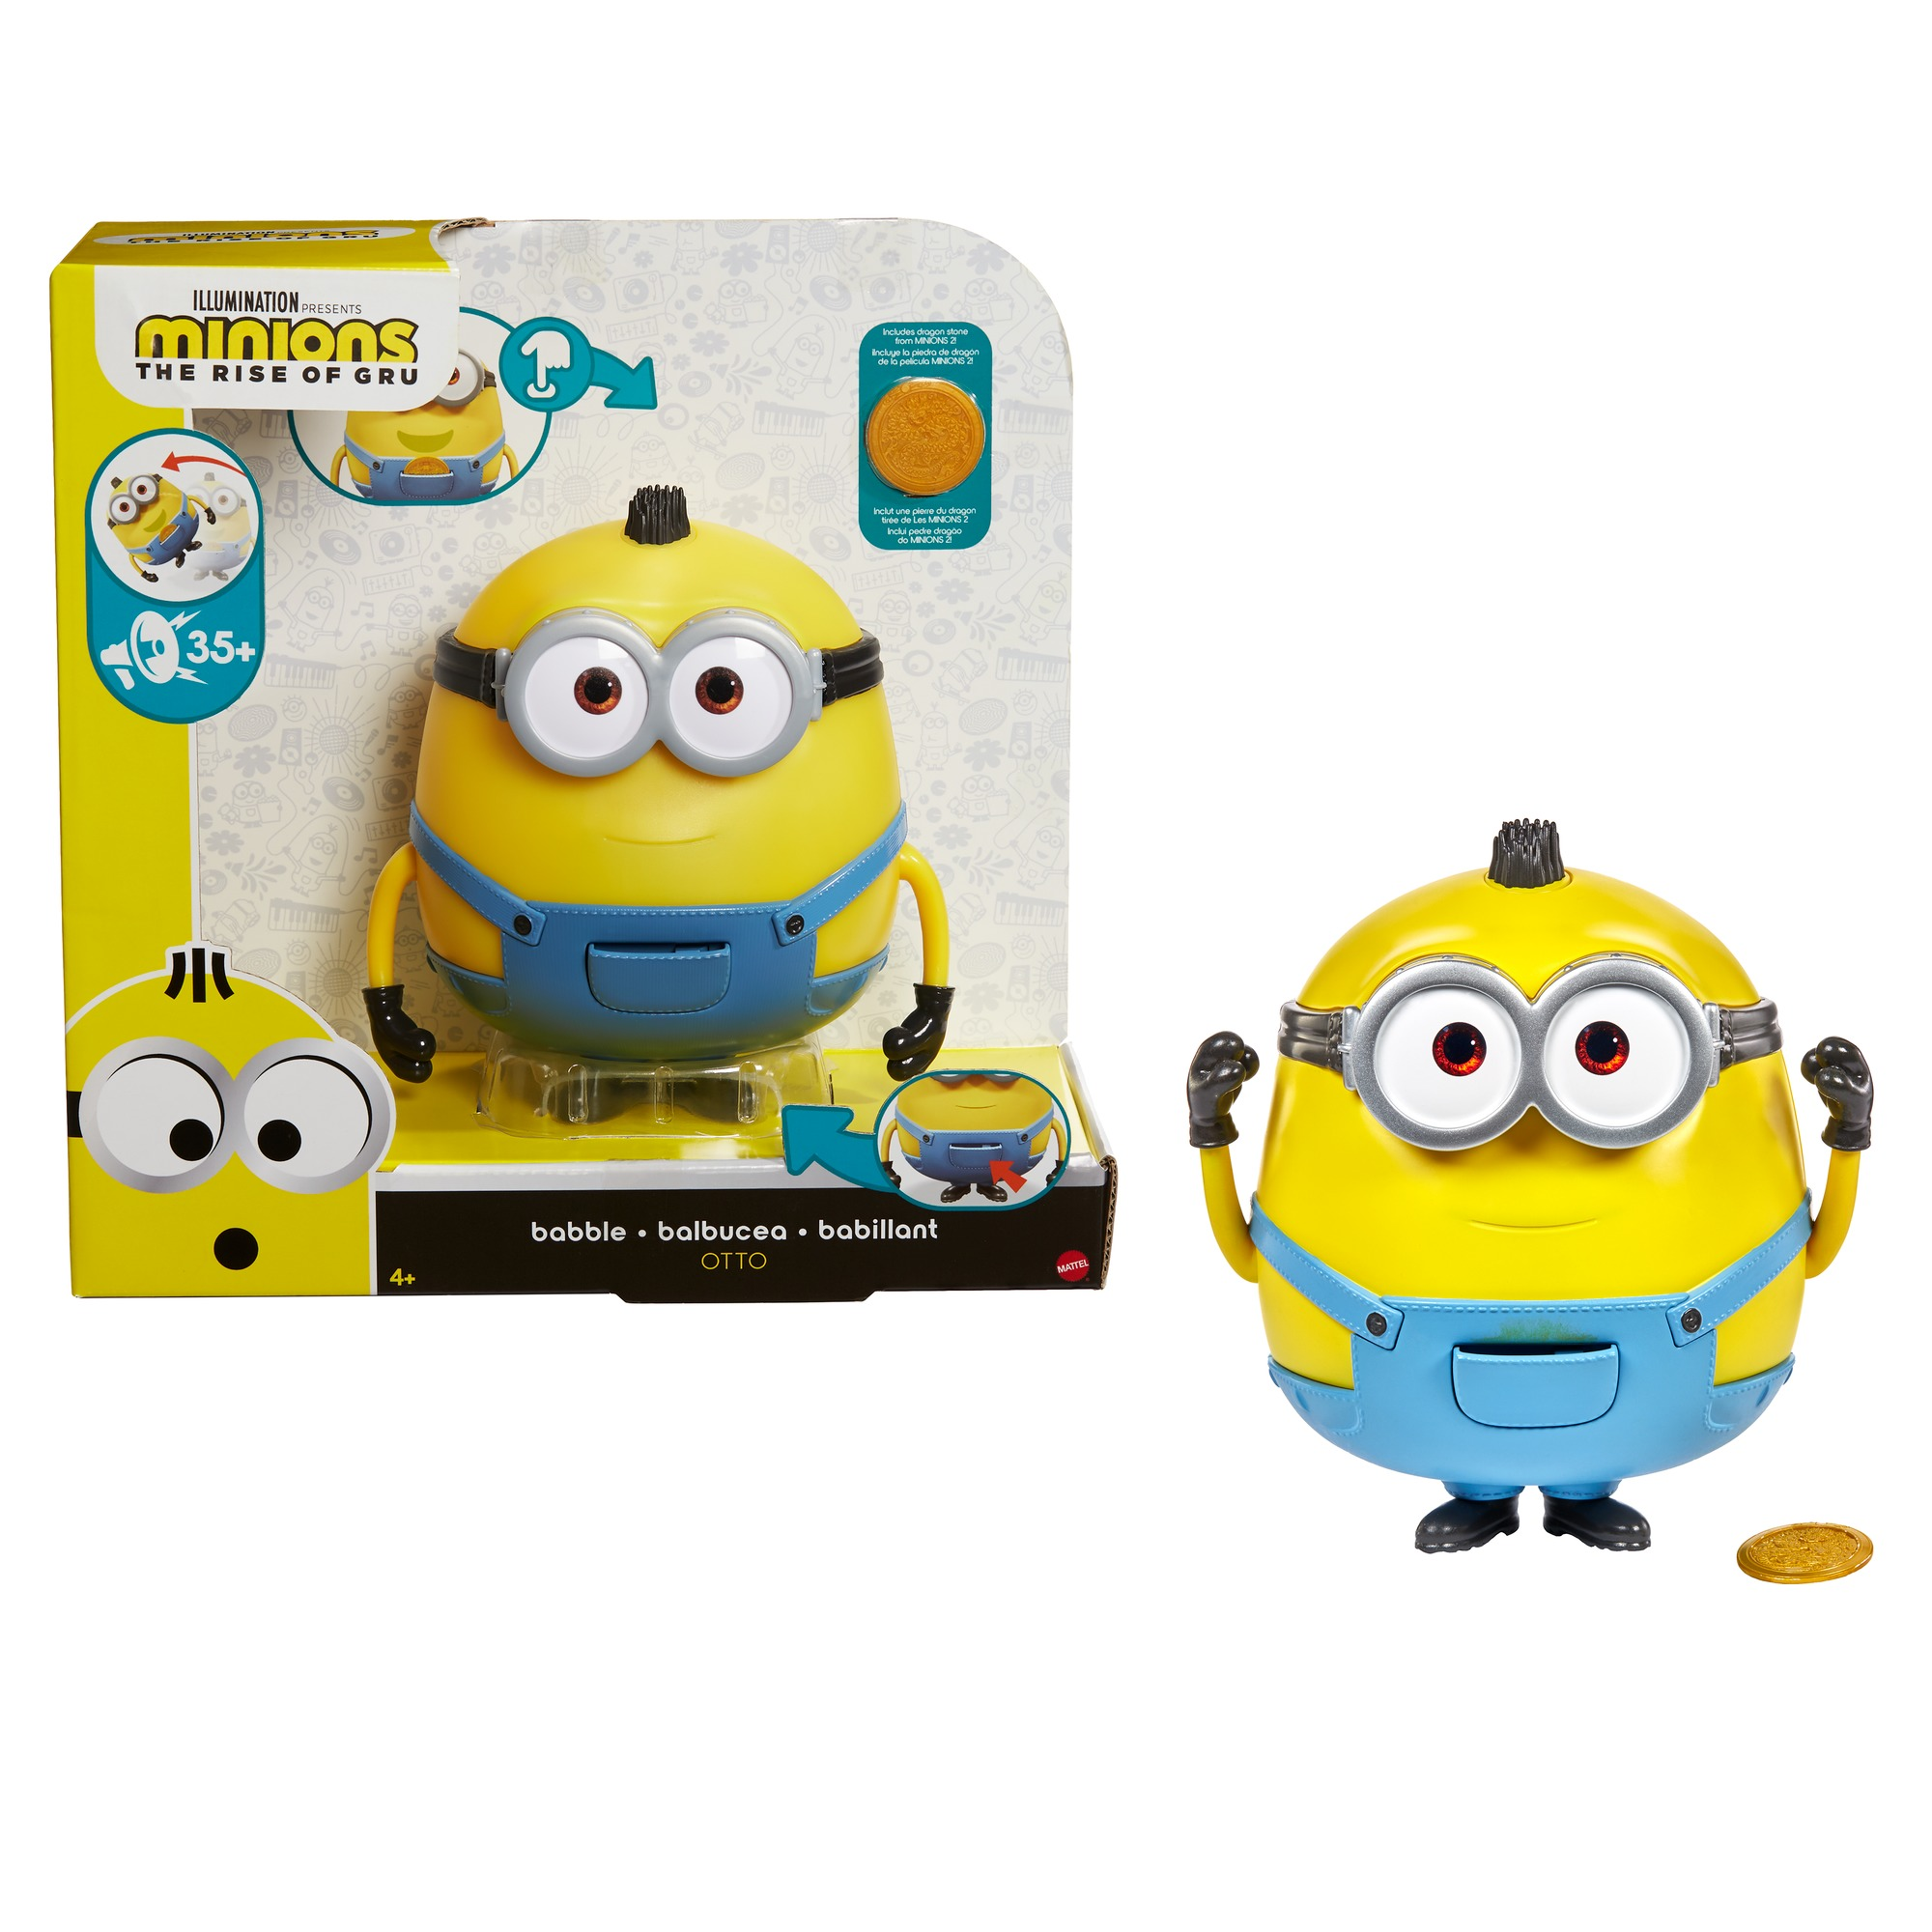 Minions: The Rise of Gru Babble Otto Large Interactive Toy For Kids Ages 4 Years & Up (Walmart)